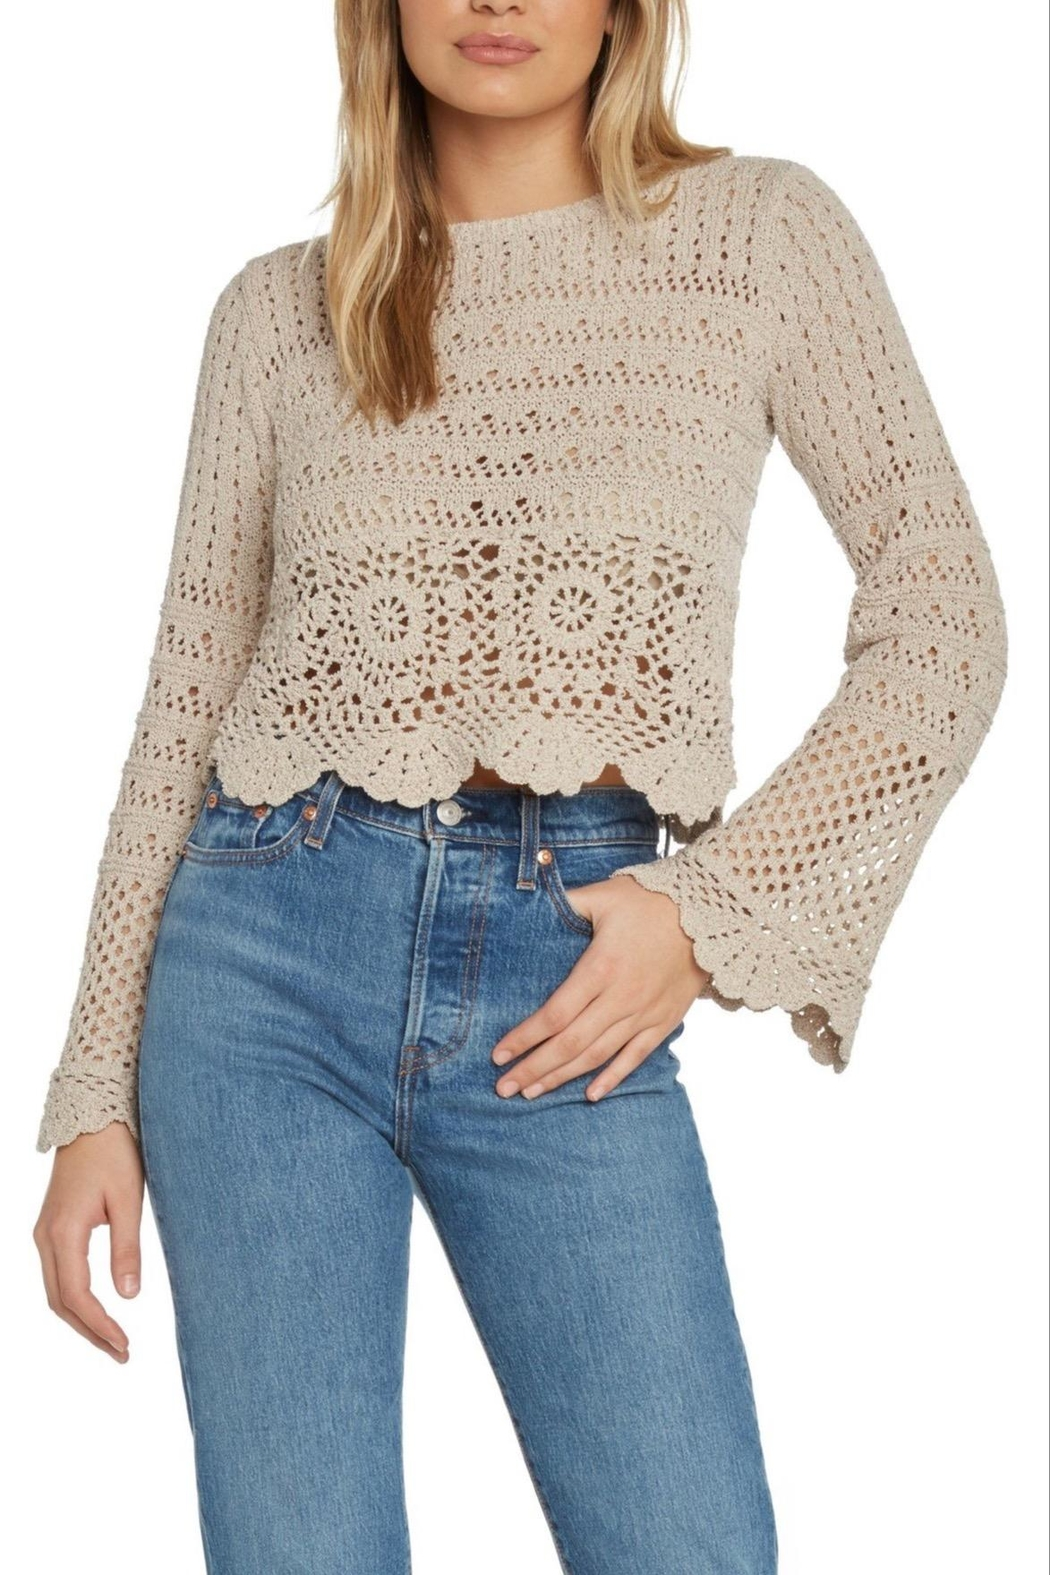 Willow & Clay Soleil Crochet Sweater - Main Image